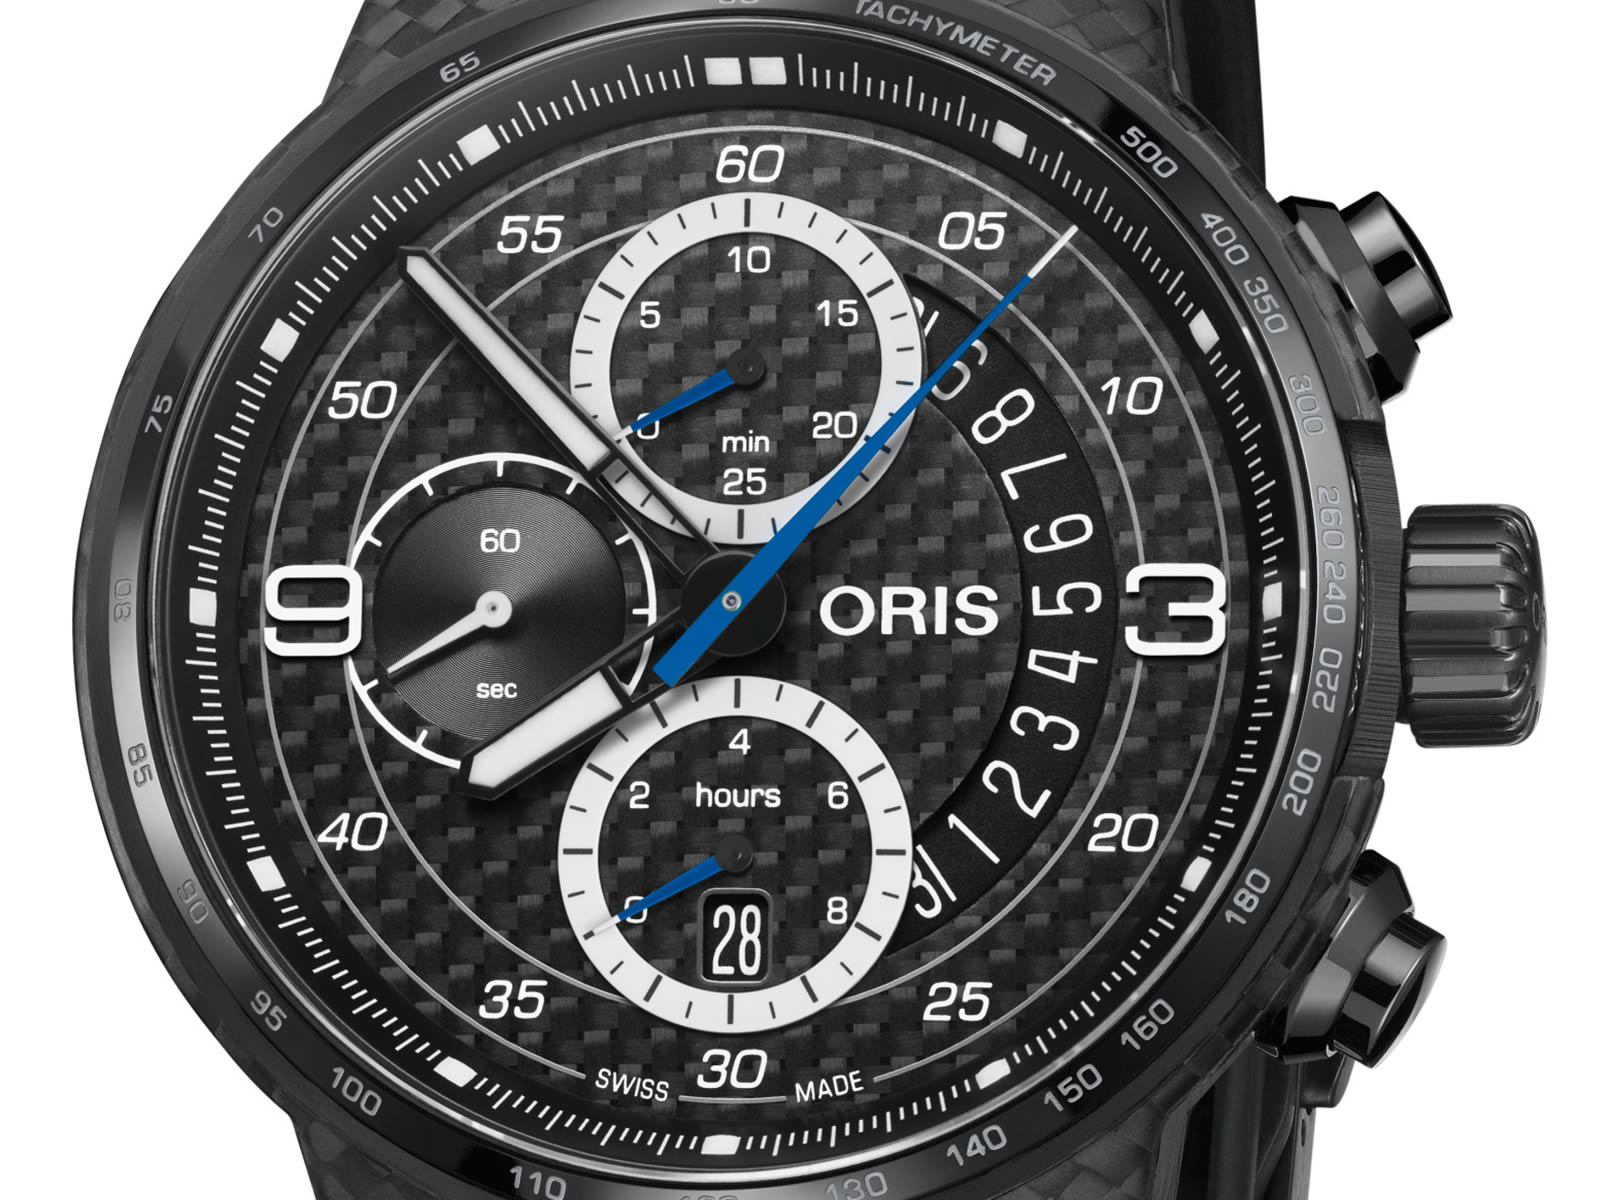 01-774-7725-8794-rs-oris-williams-fw41-limited-edition-full-carbon-3-.jpg